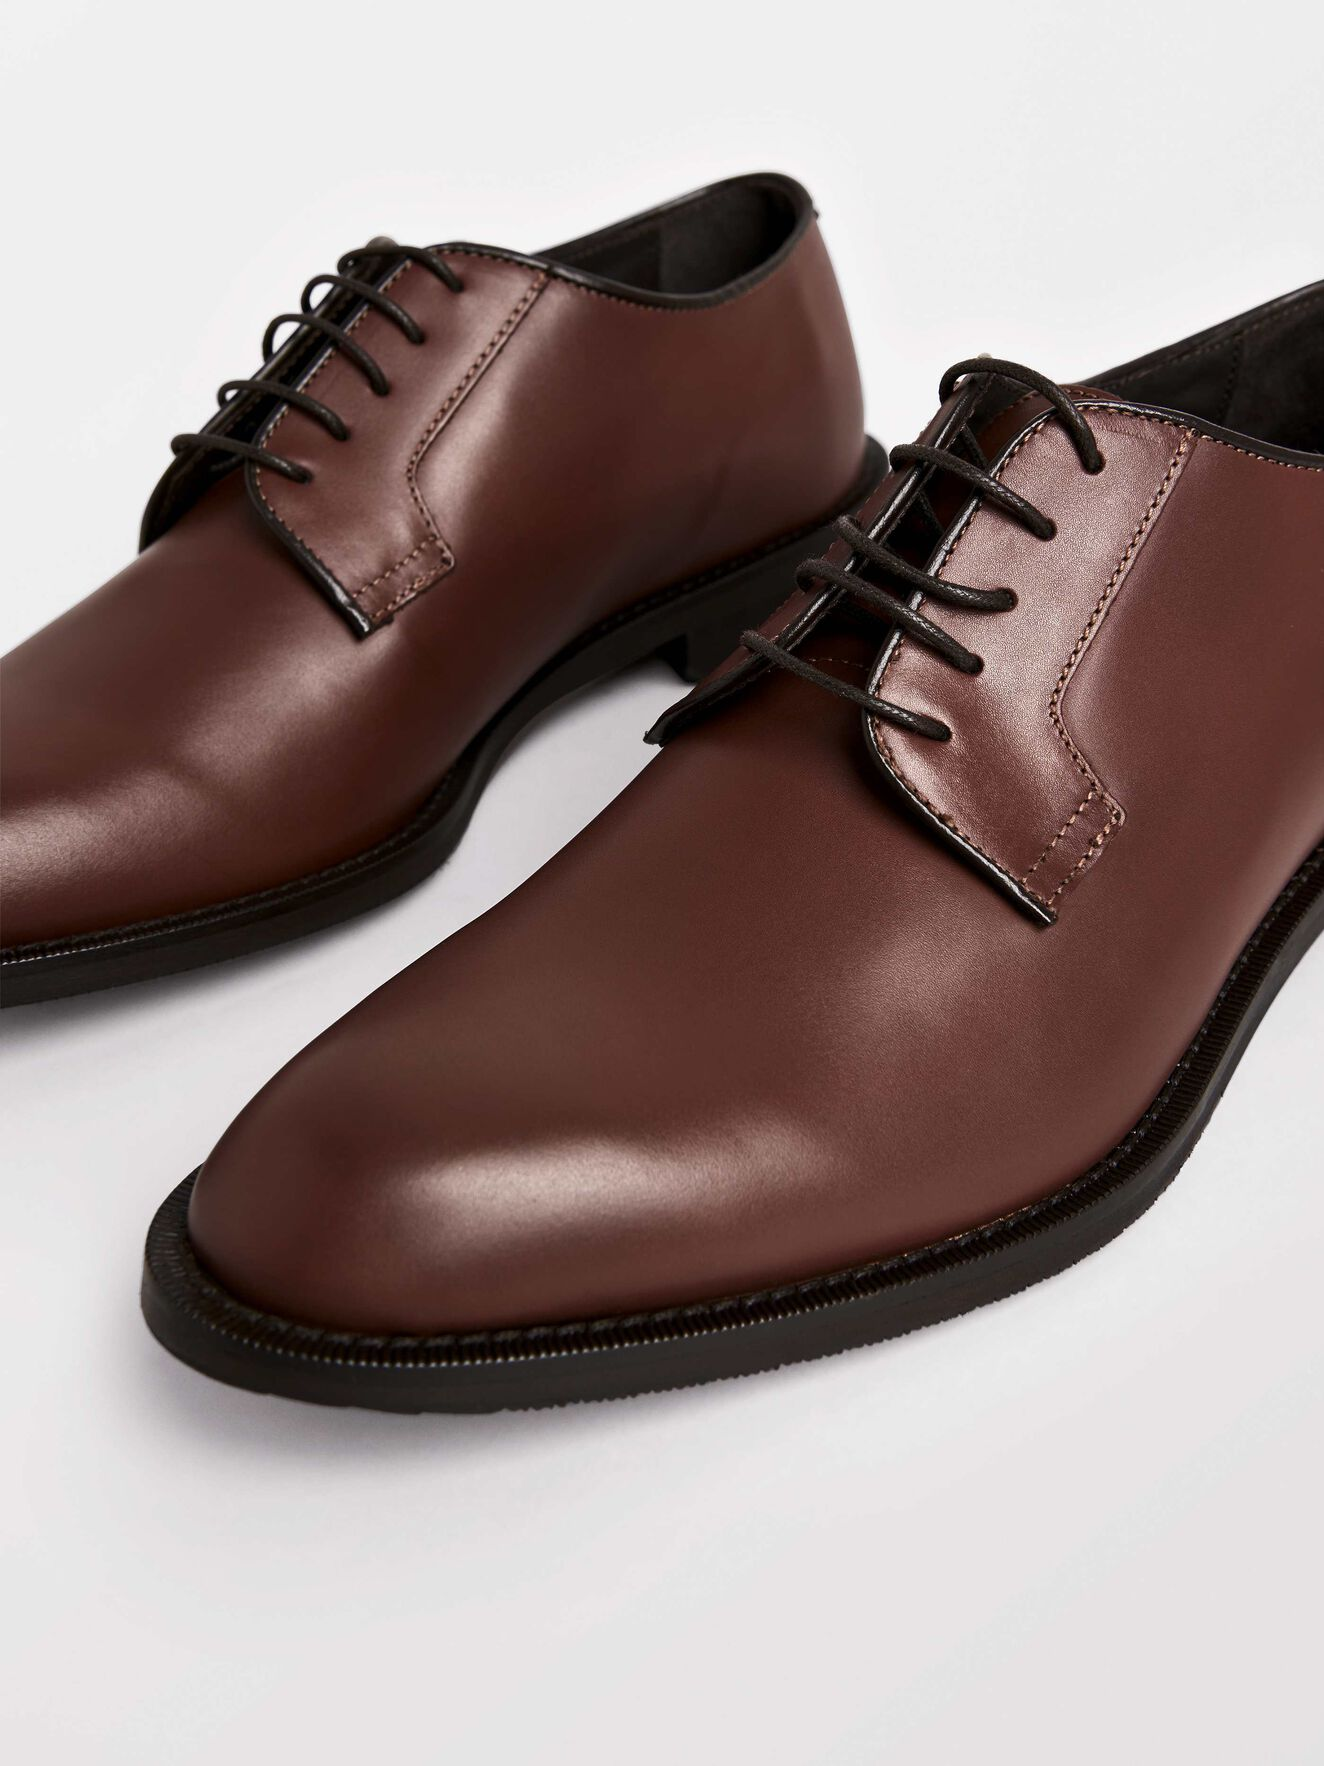 Agaton Shoe in Cognac from Tiger of Sweden